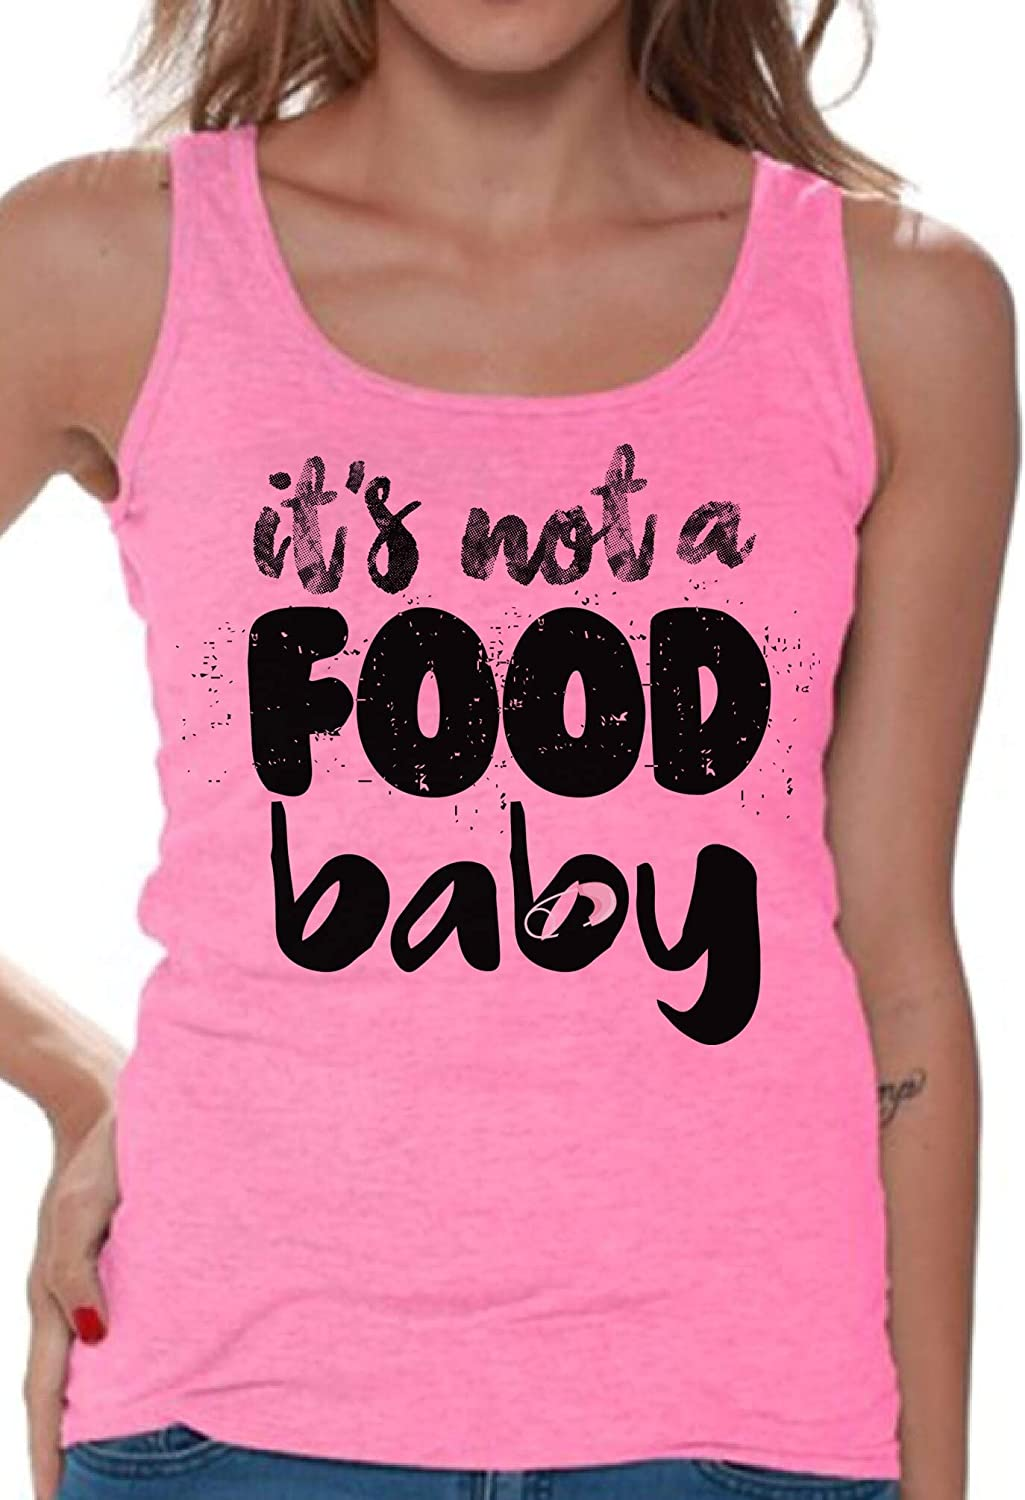 Awkward Styles It's Not a Food Baby Tank Top for Women Cute Shirt Pregnancy Reveal Tanks